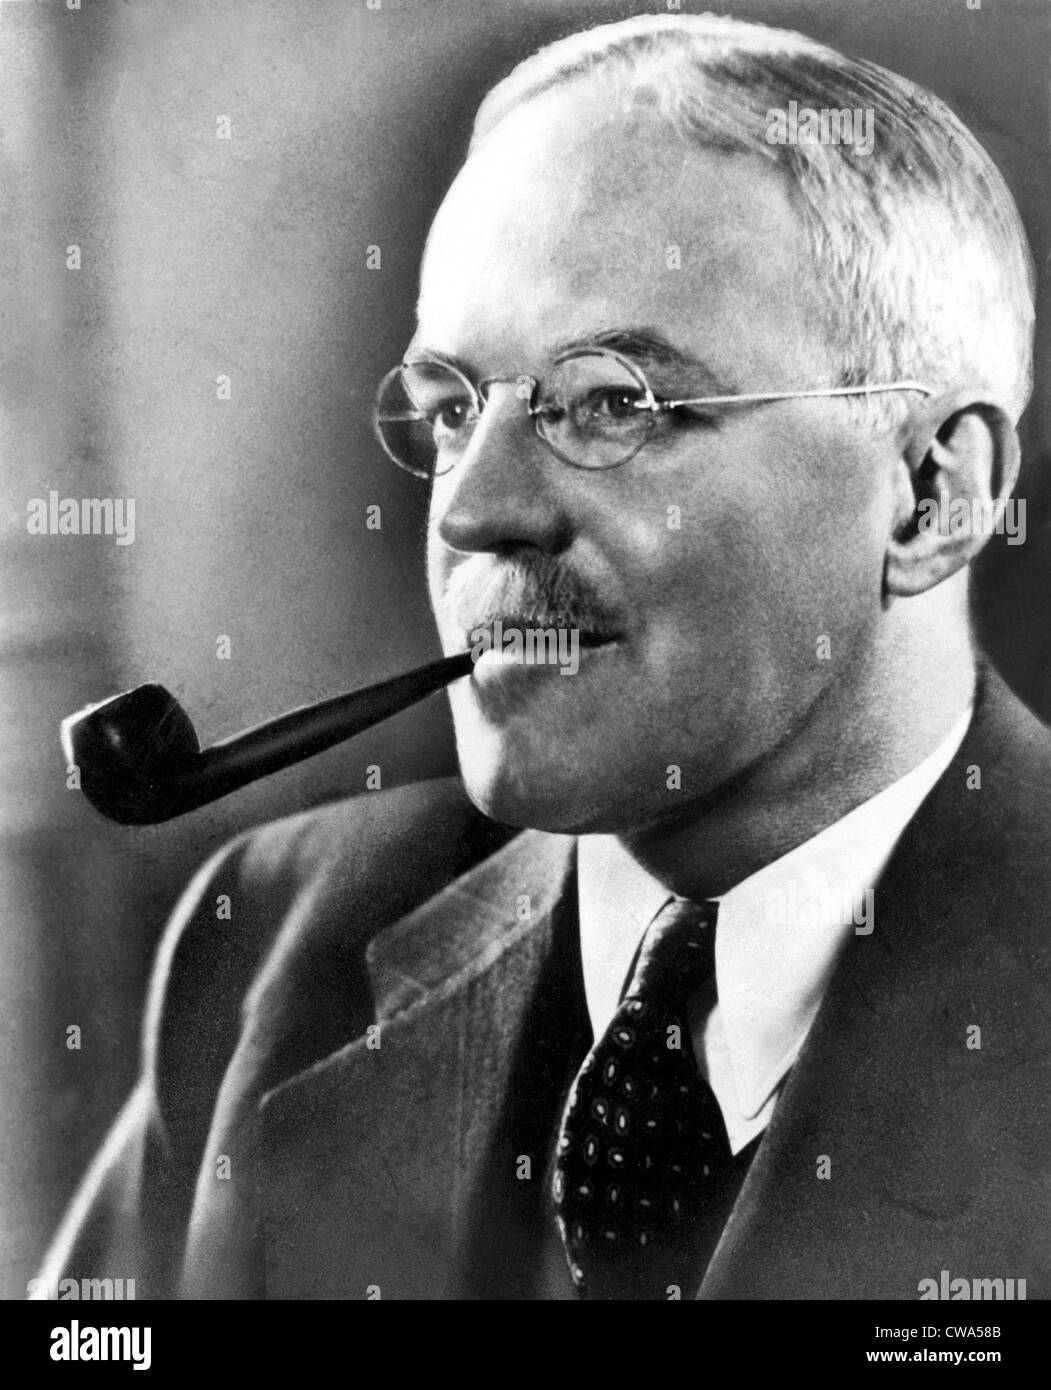 Image result for photos of Allan Dulles of the cia